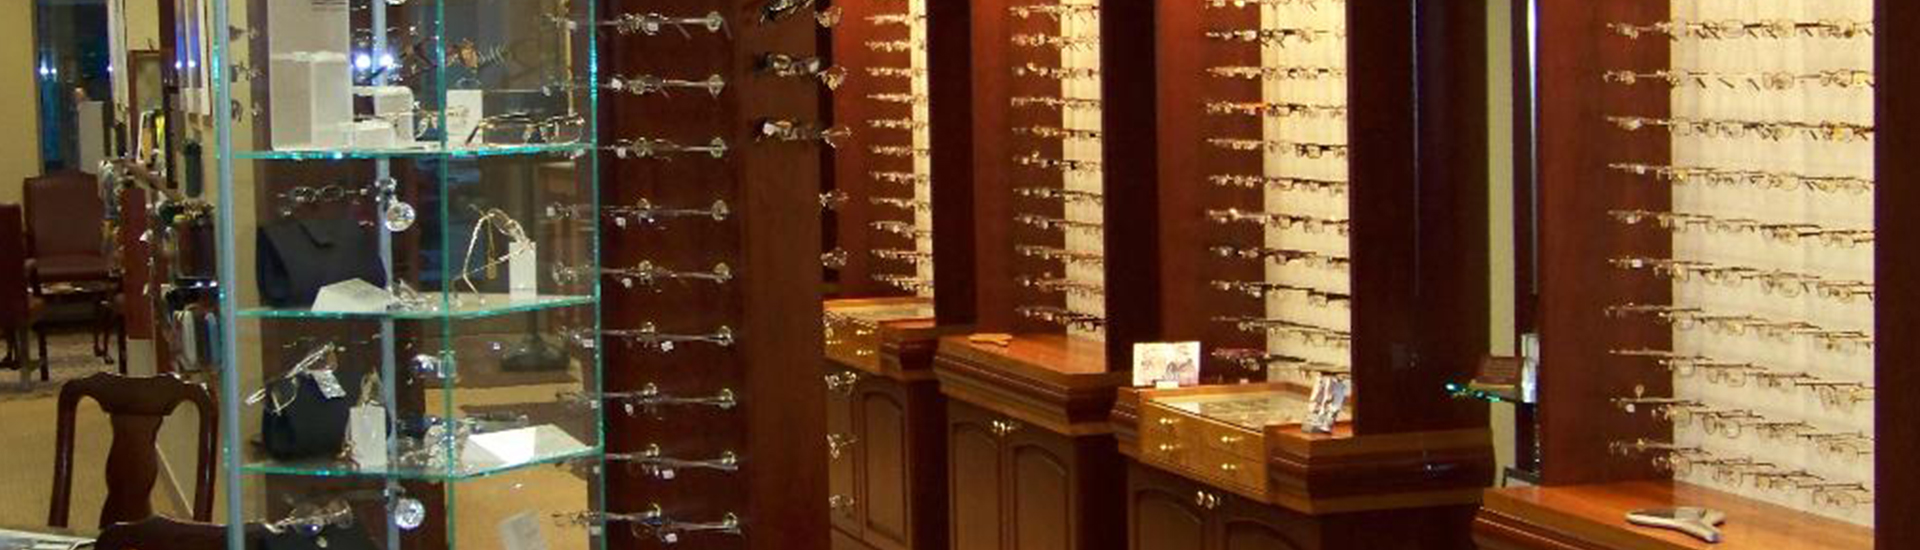 Vestal Eyewear Display Cases And Cabinetes